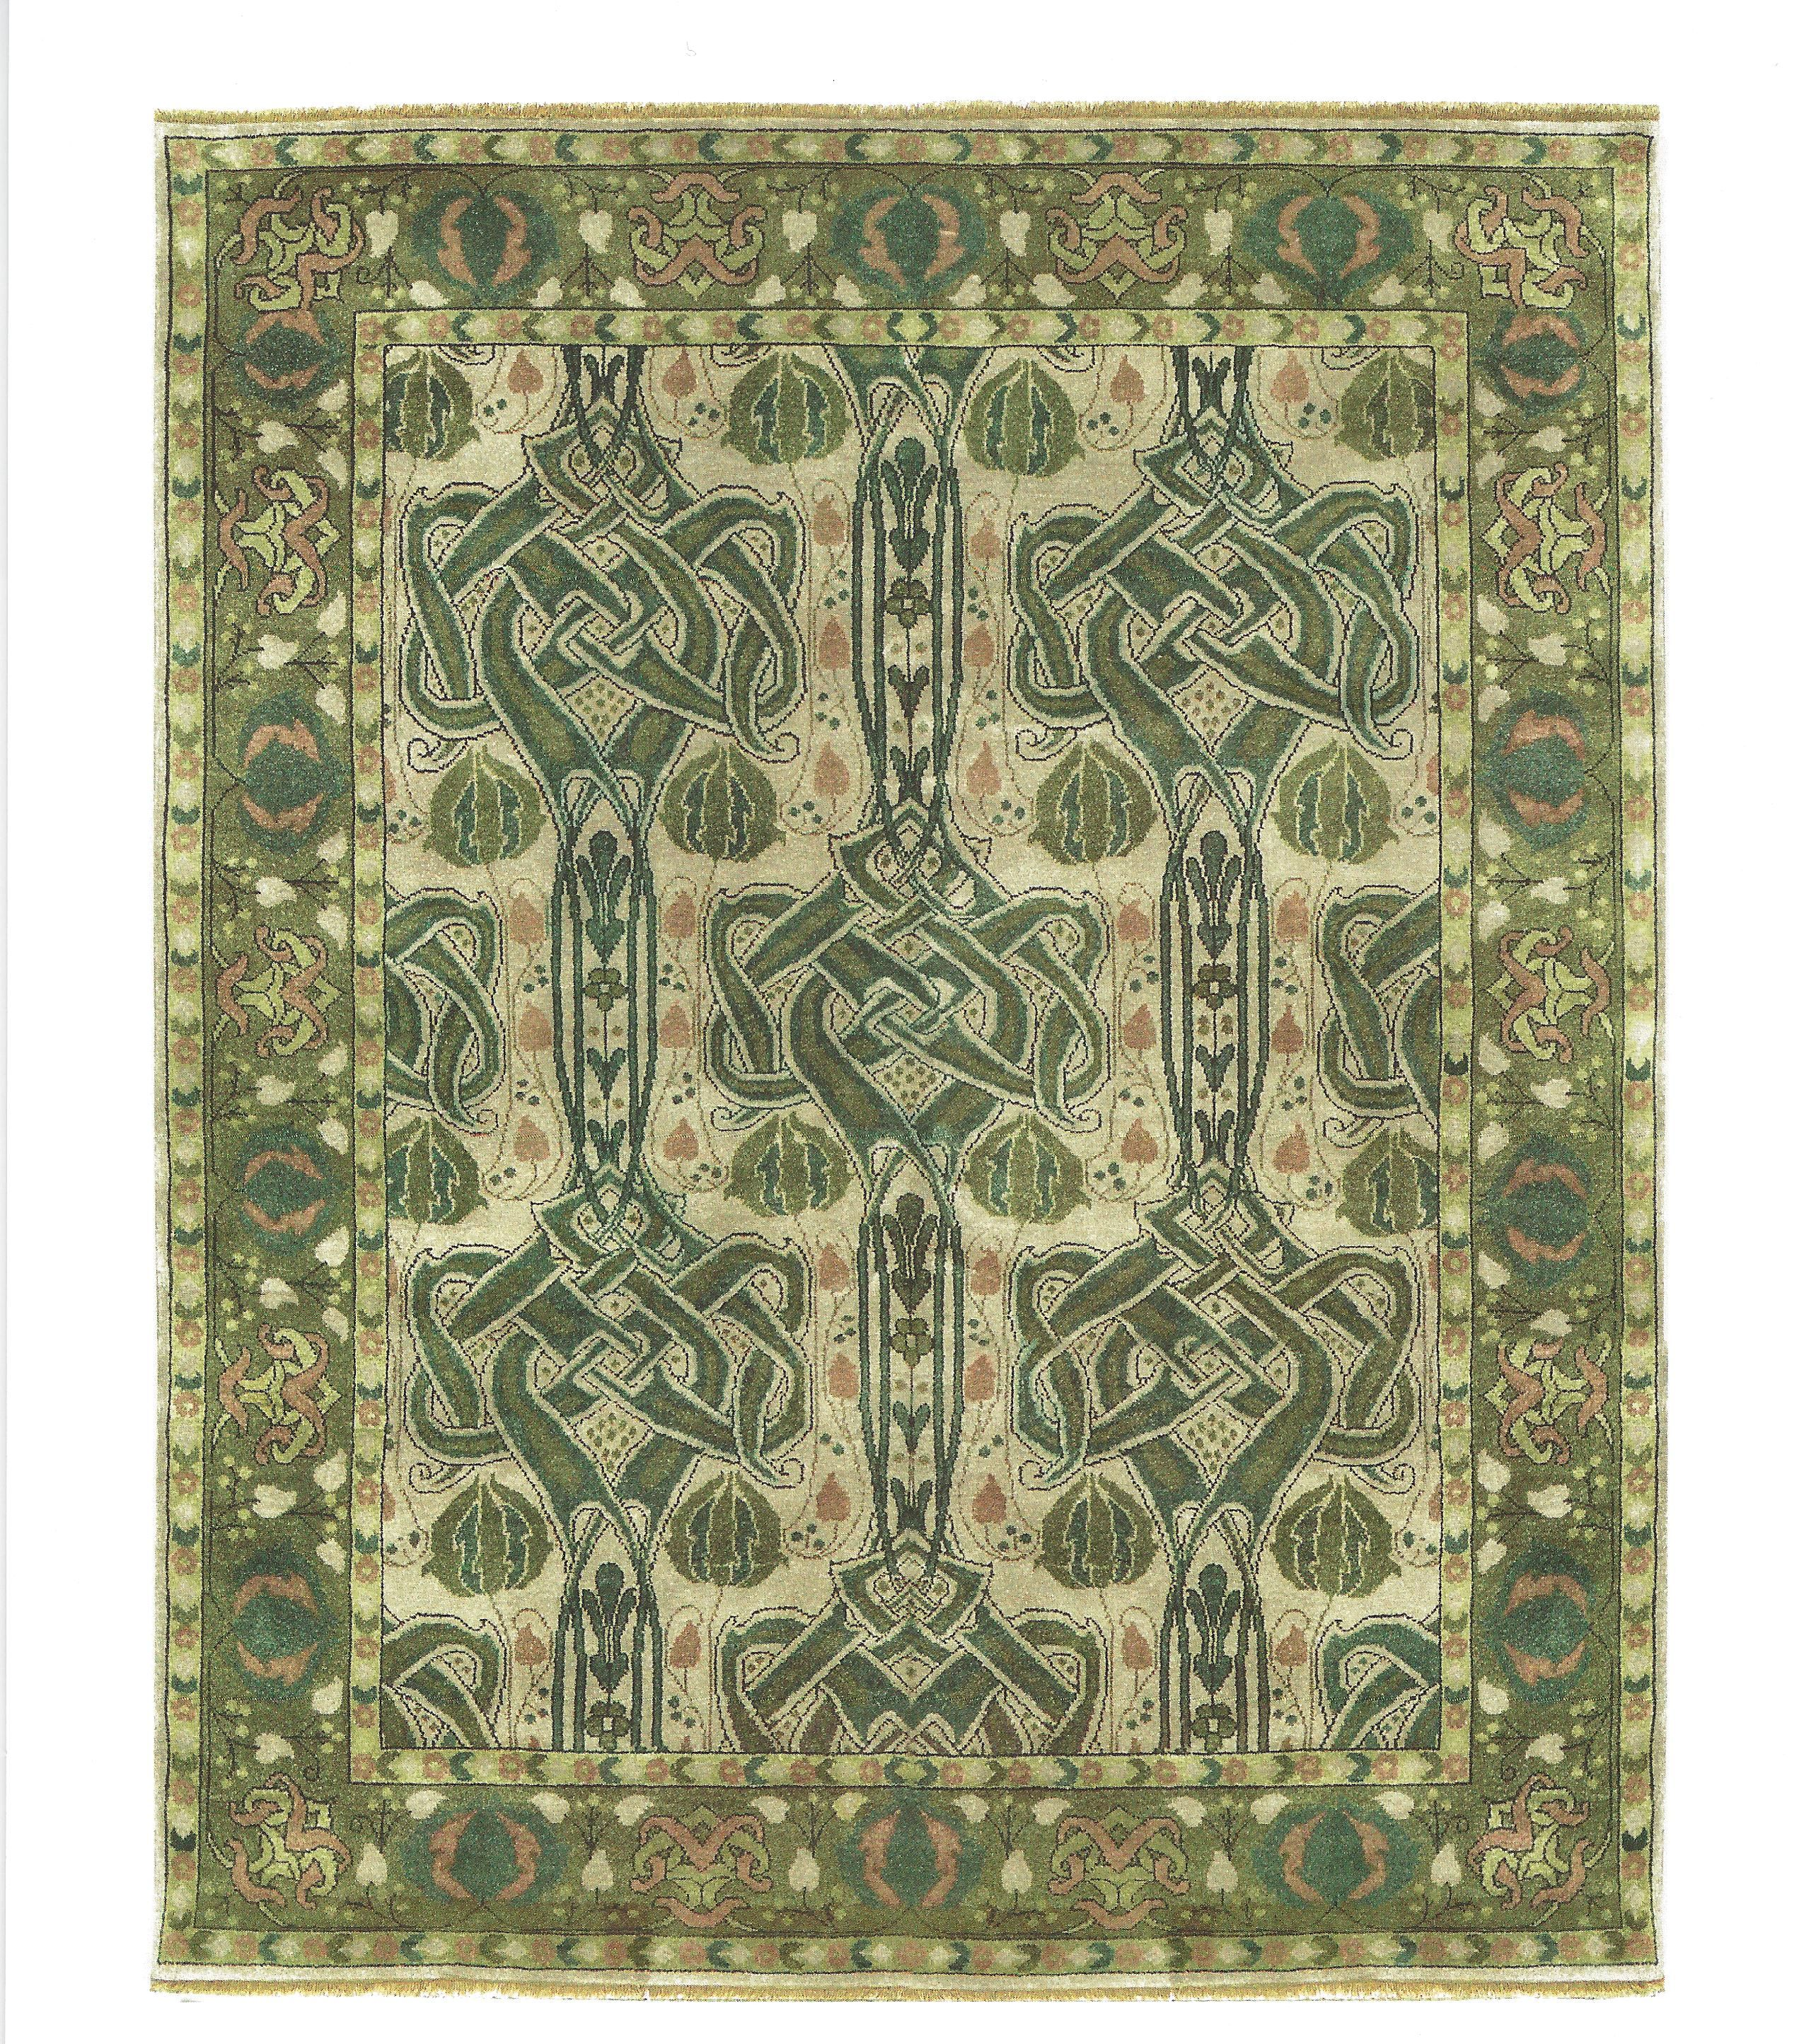 Celtic Knot Rug (Green) | Little Bear Interiors. The Best Furniture Store In